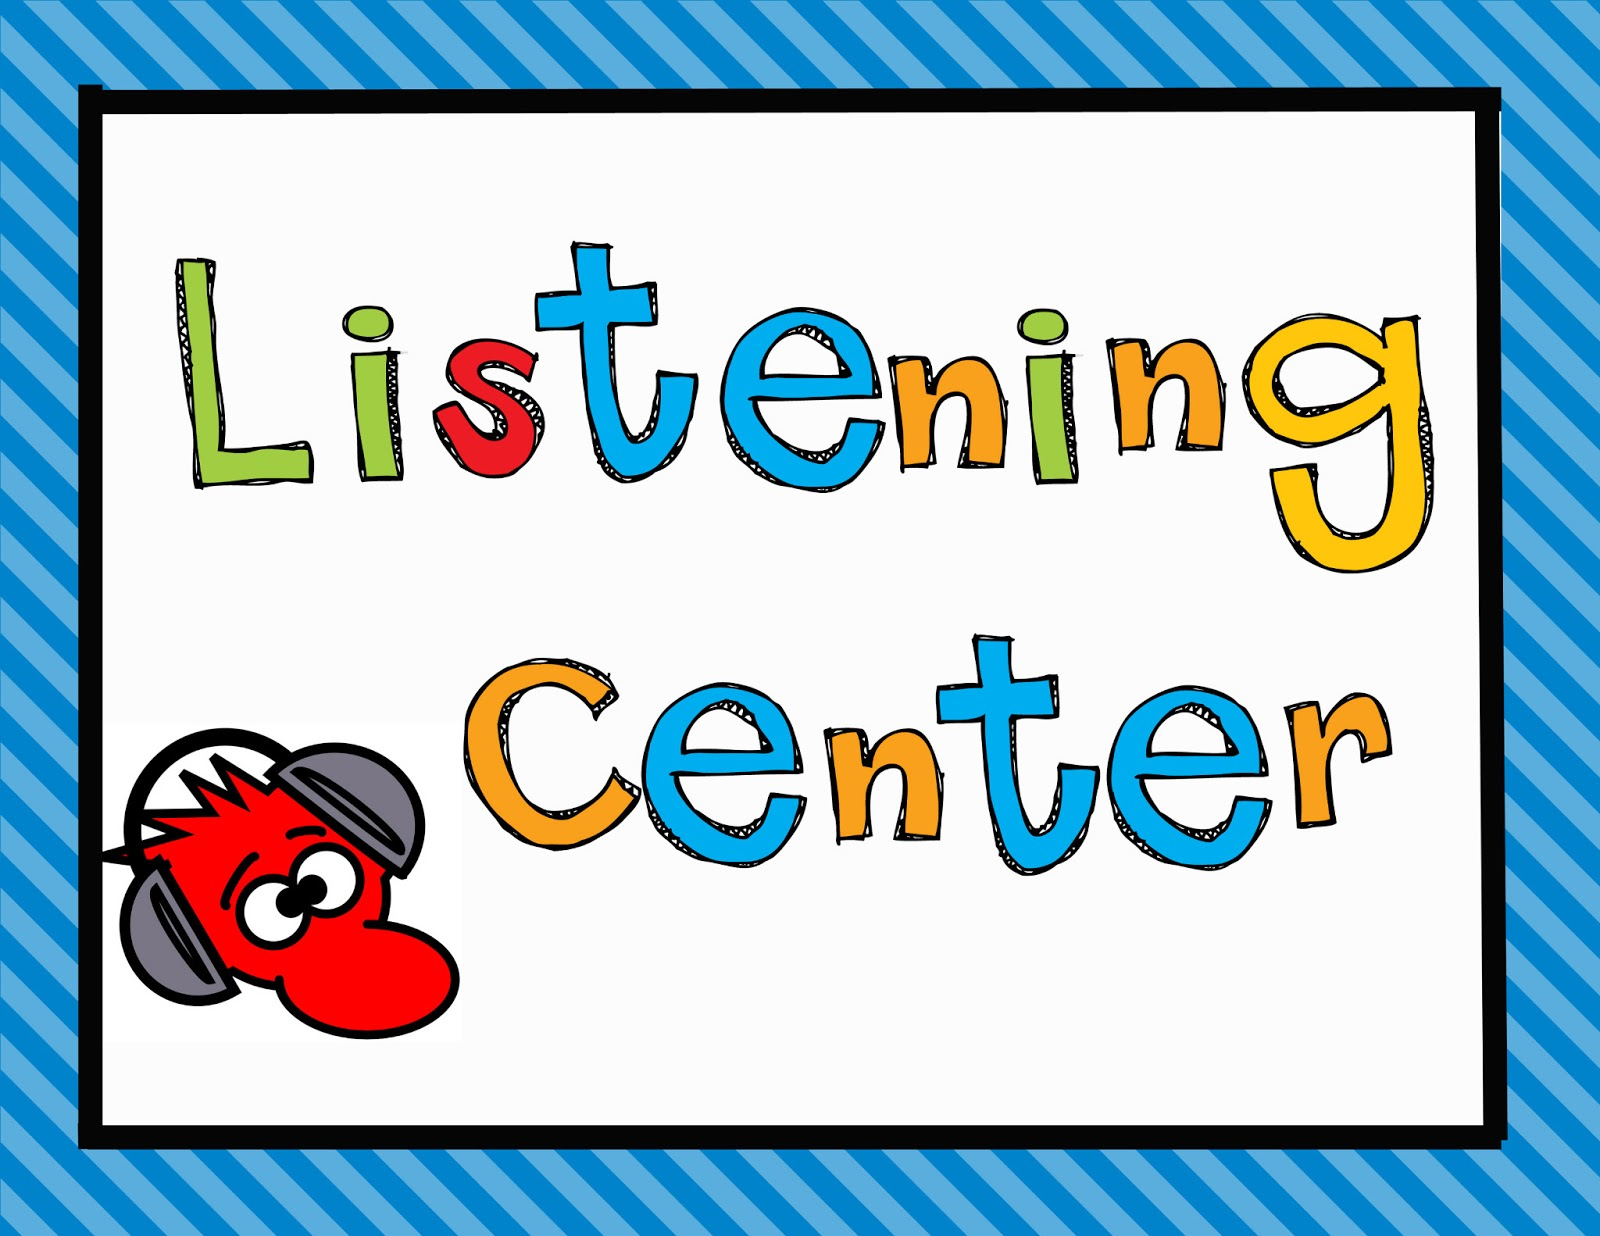 cup of special tea july 2013 listening centre clipart Listening Ears Clip Art